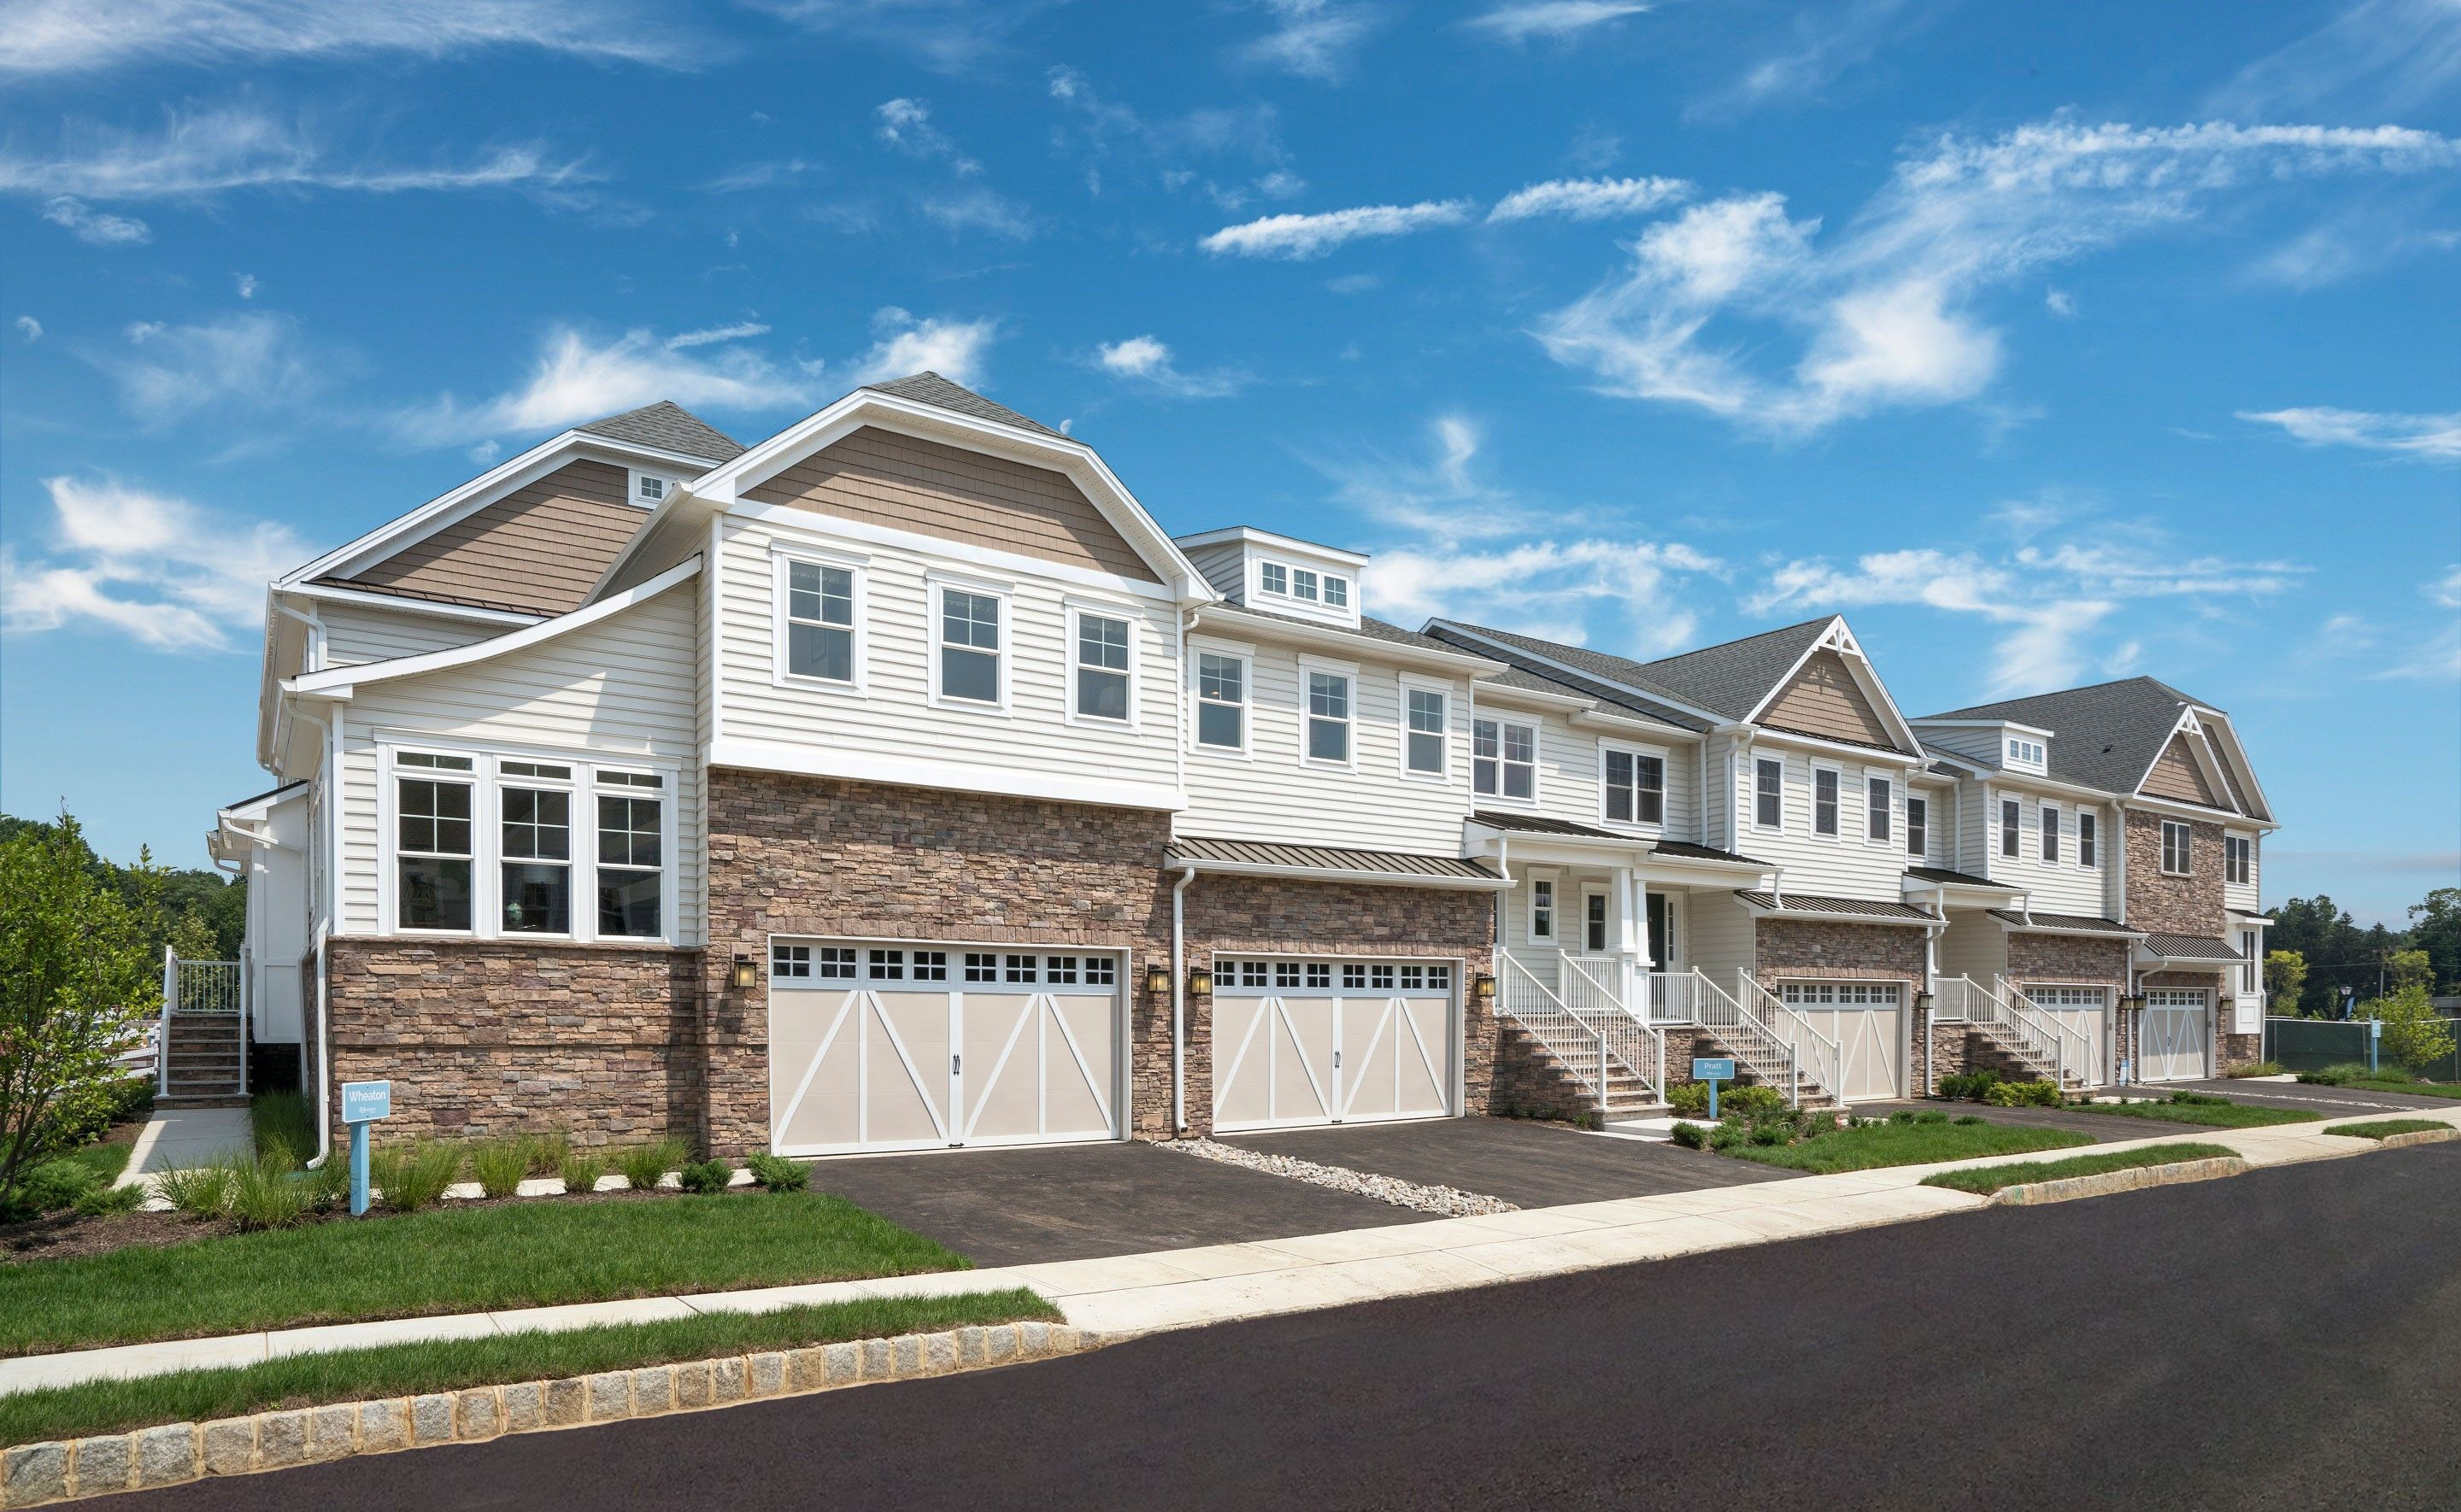 New home construction plans in monmouth county nj for New jersey home builders